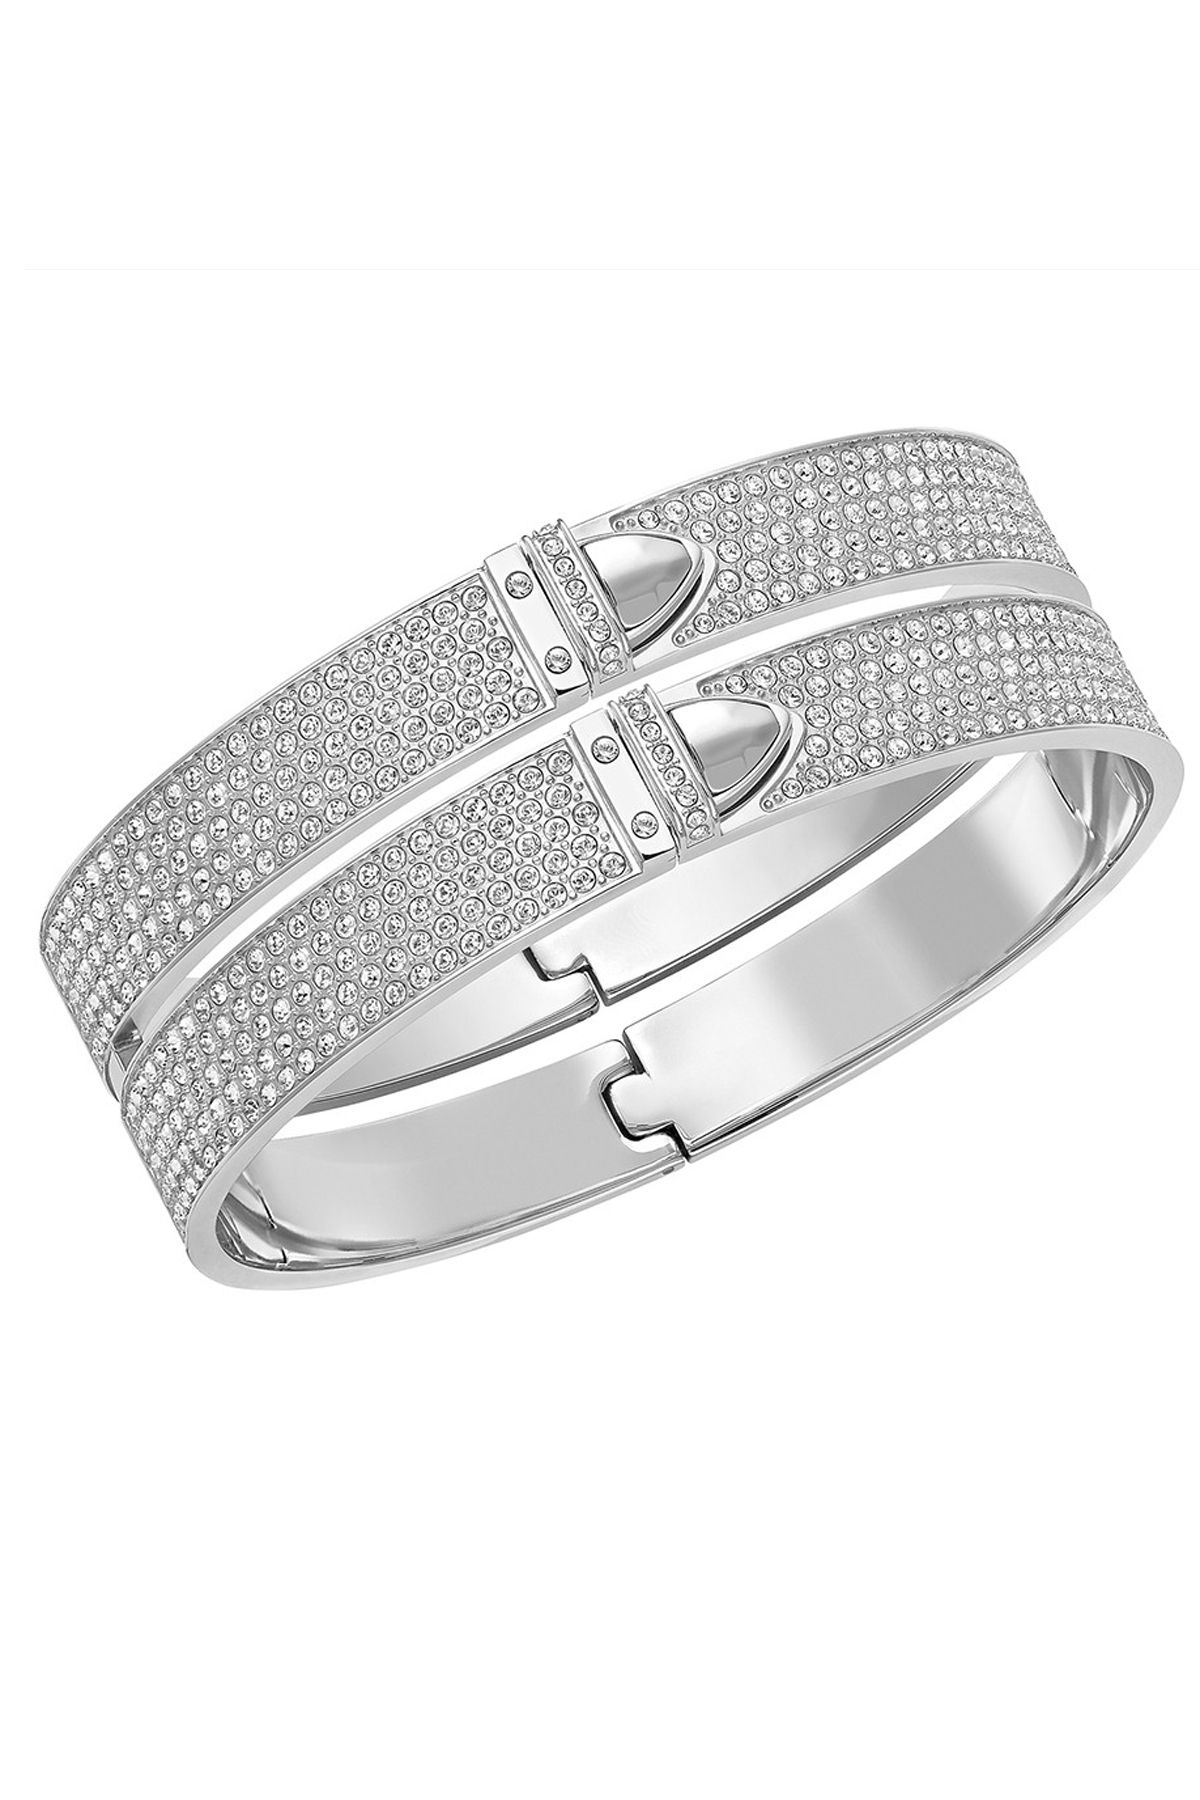 e55f693a5 Everyone loves a little bit of sparkle—check out this Swarovski Distinct  Wide Bangle.